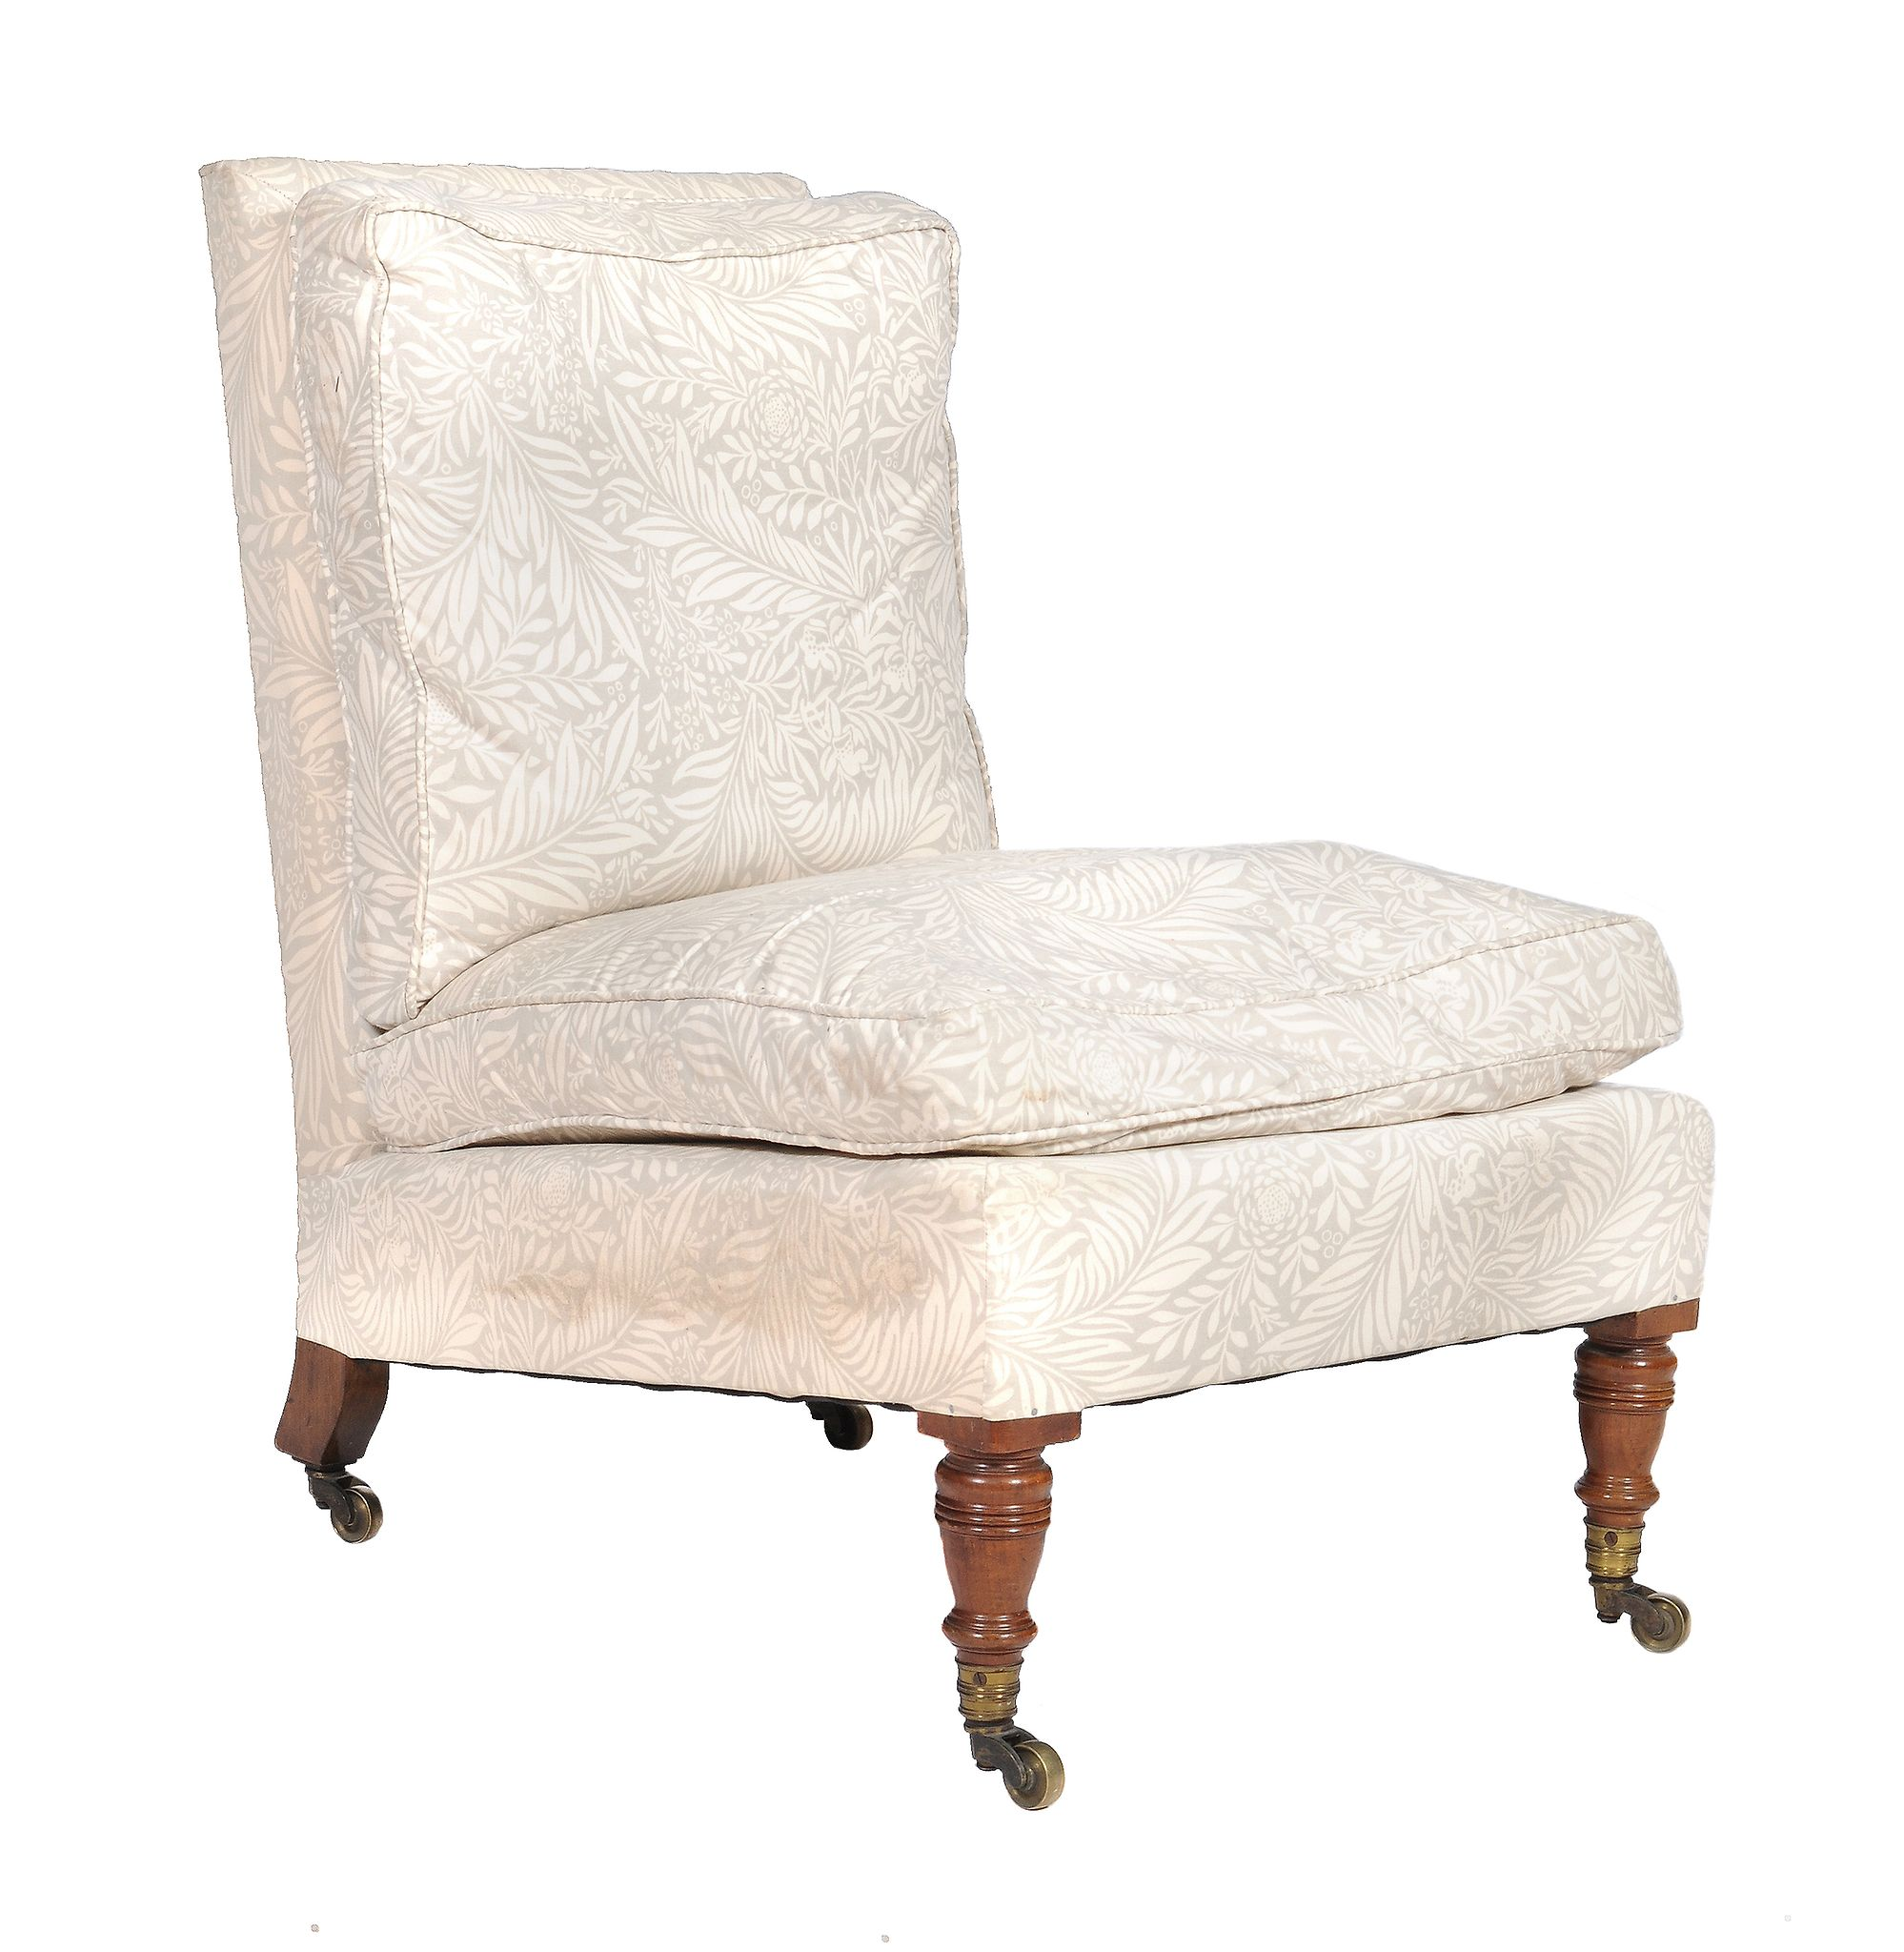 Lot 412 - A Victorian walnut and upholstered low chair by Howard & Sons, last quarter 19th century, one rear